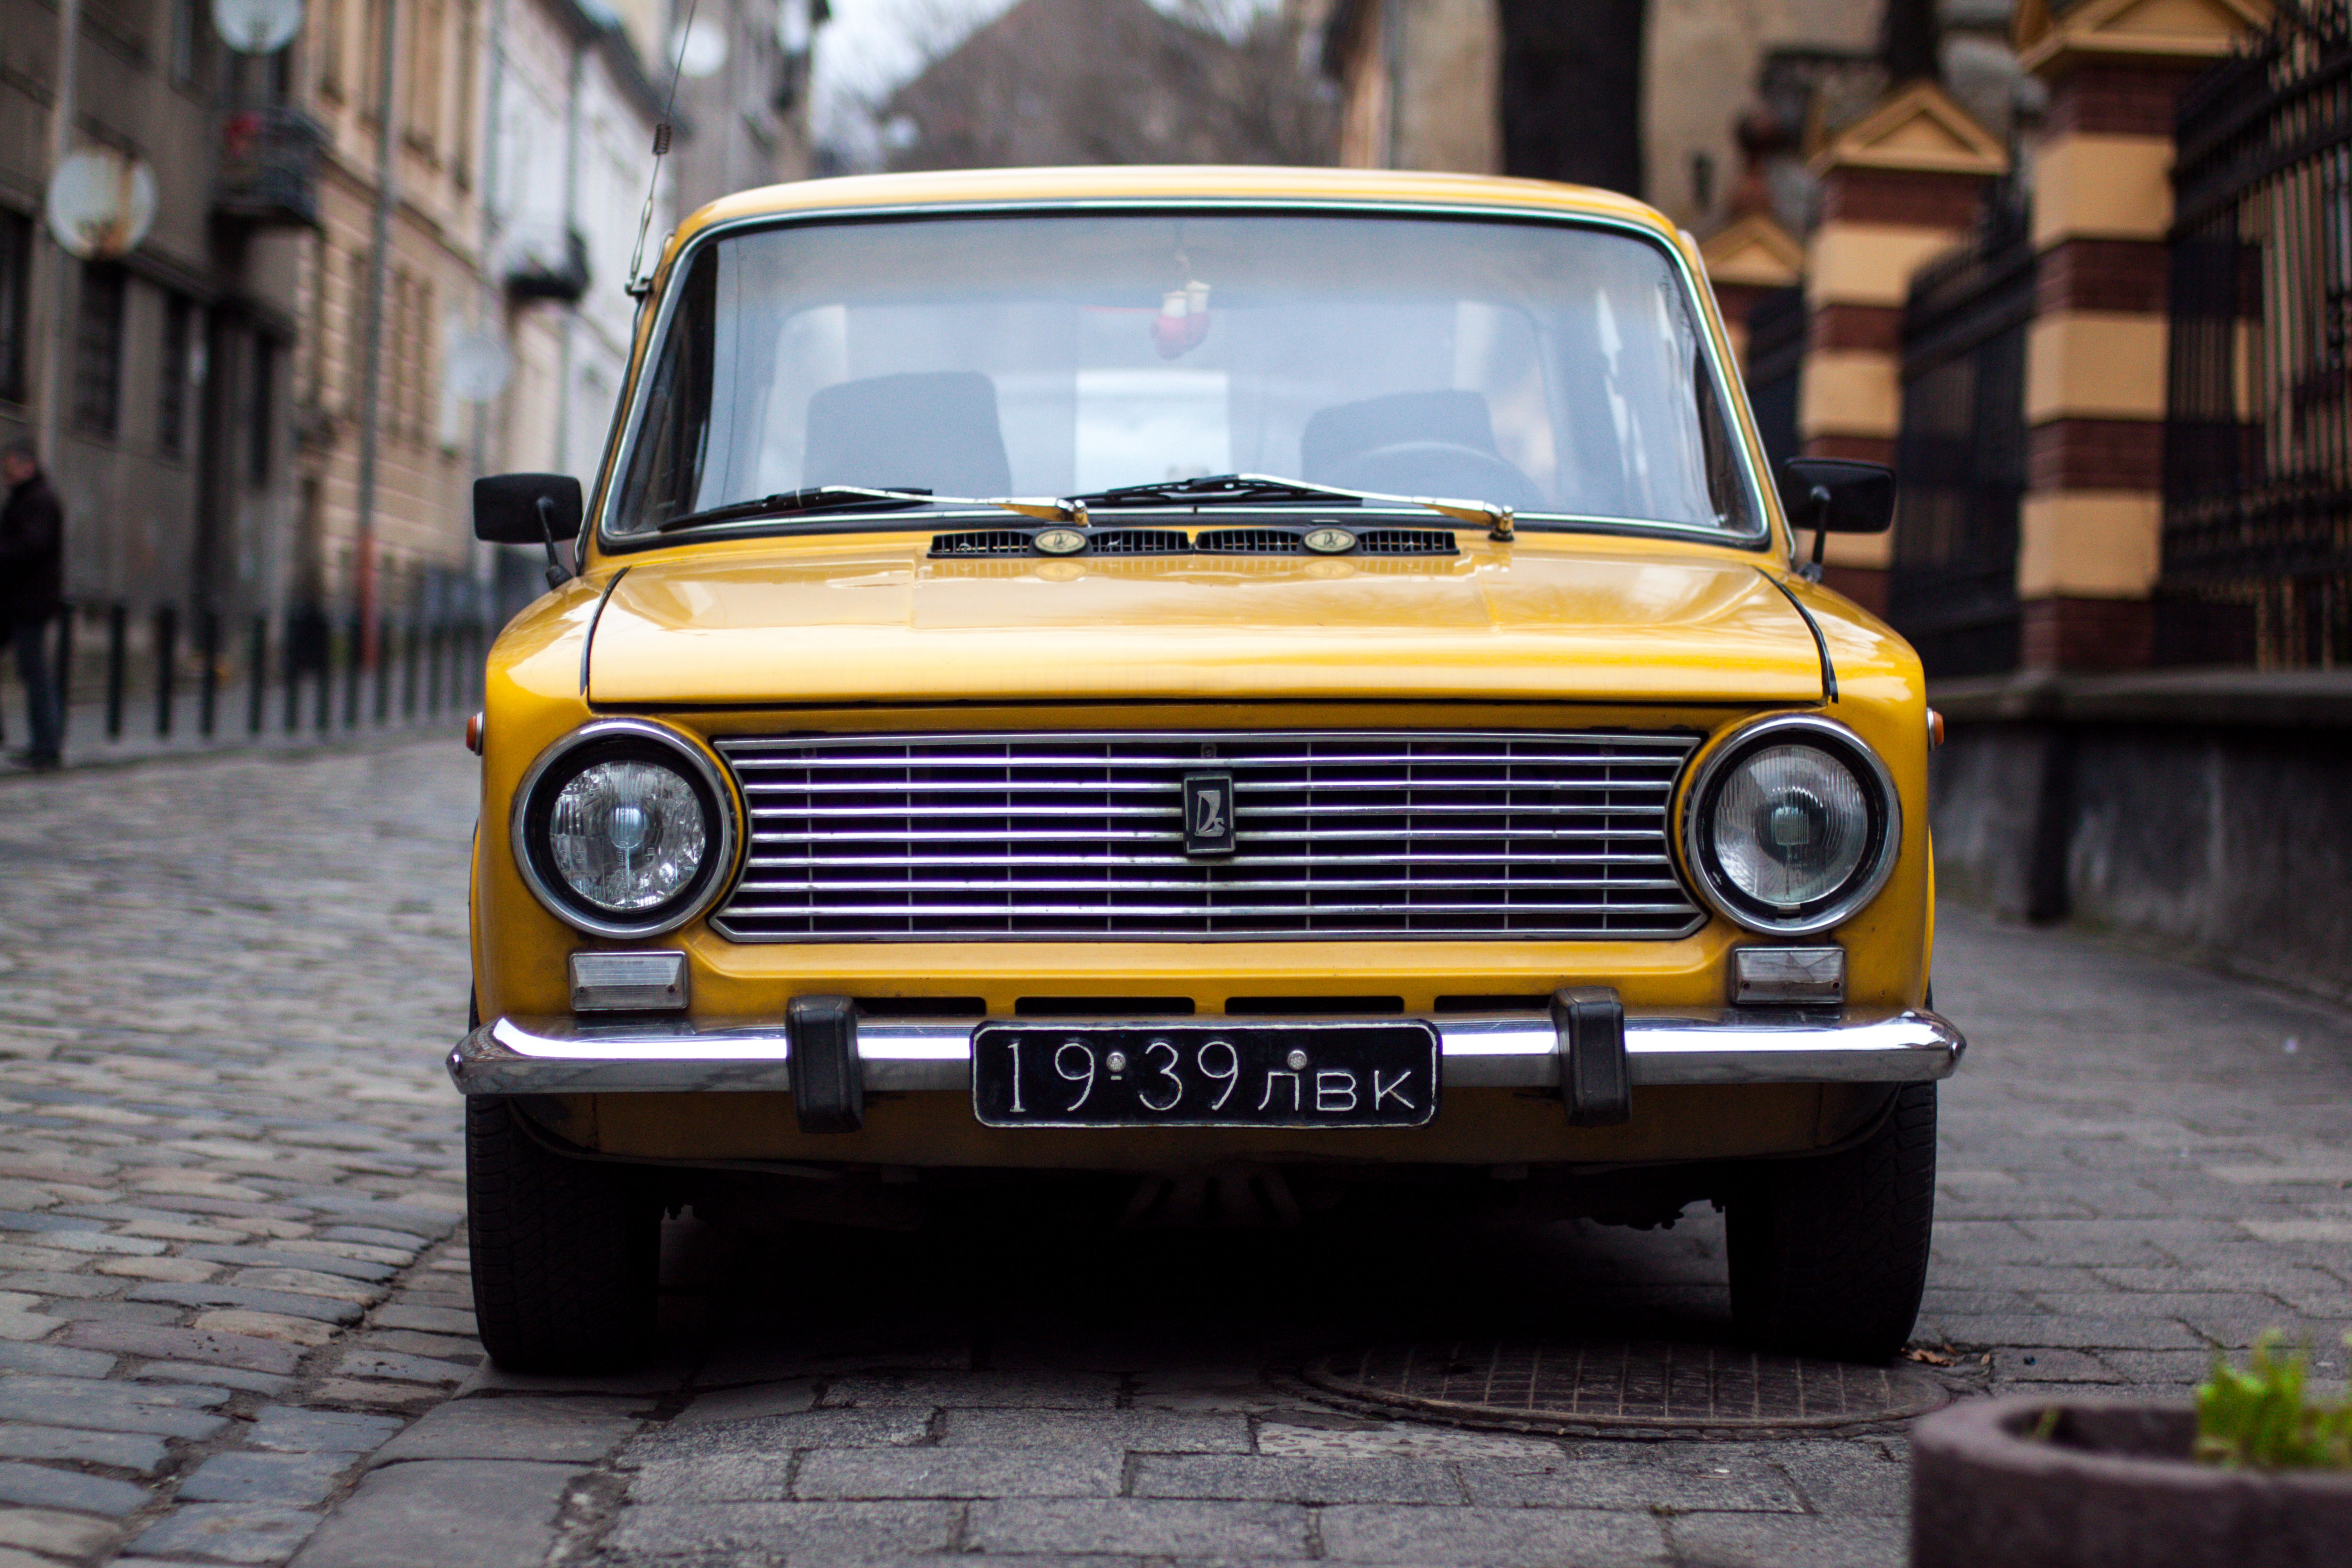 An old vintage yellow car parked on a cobblestone street